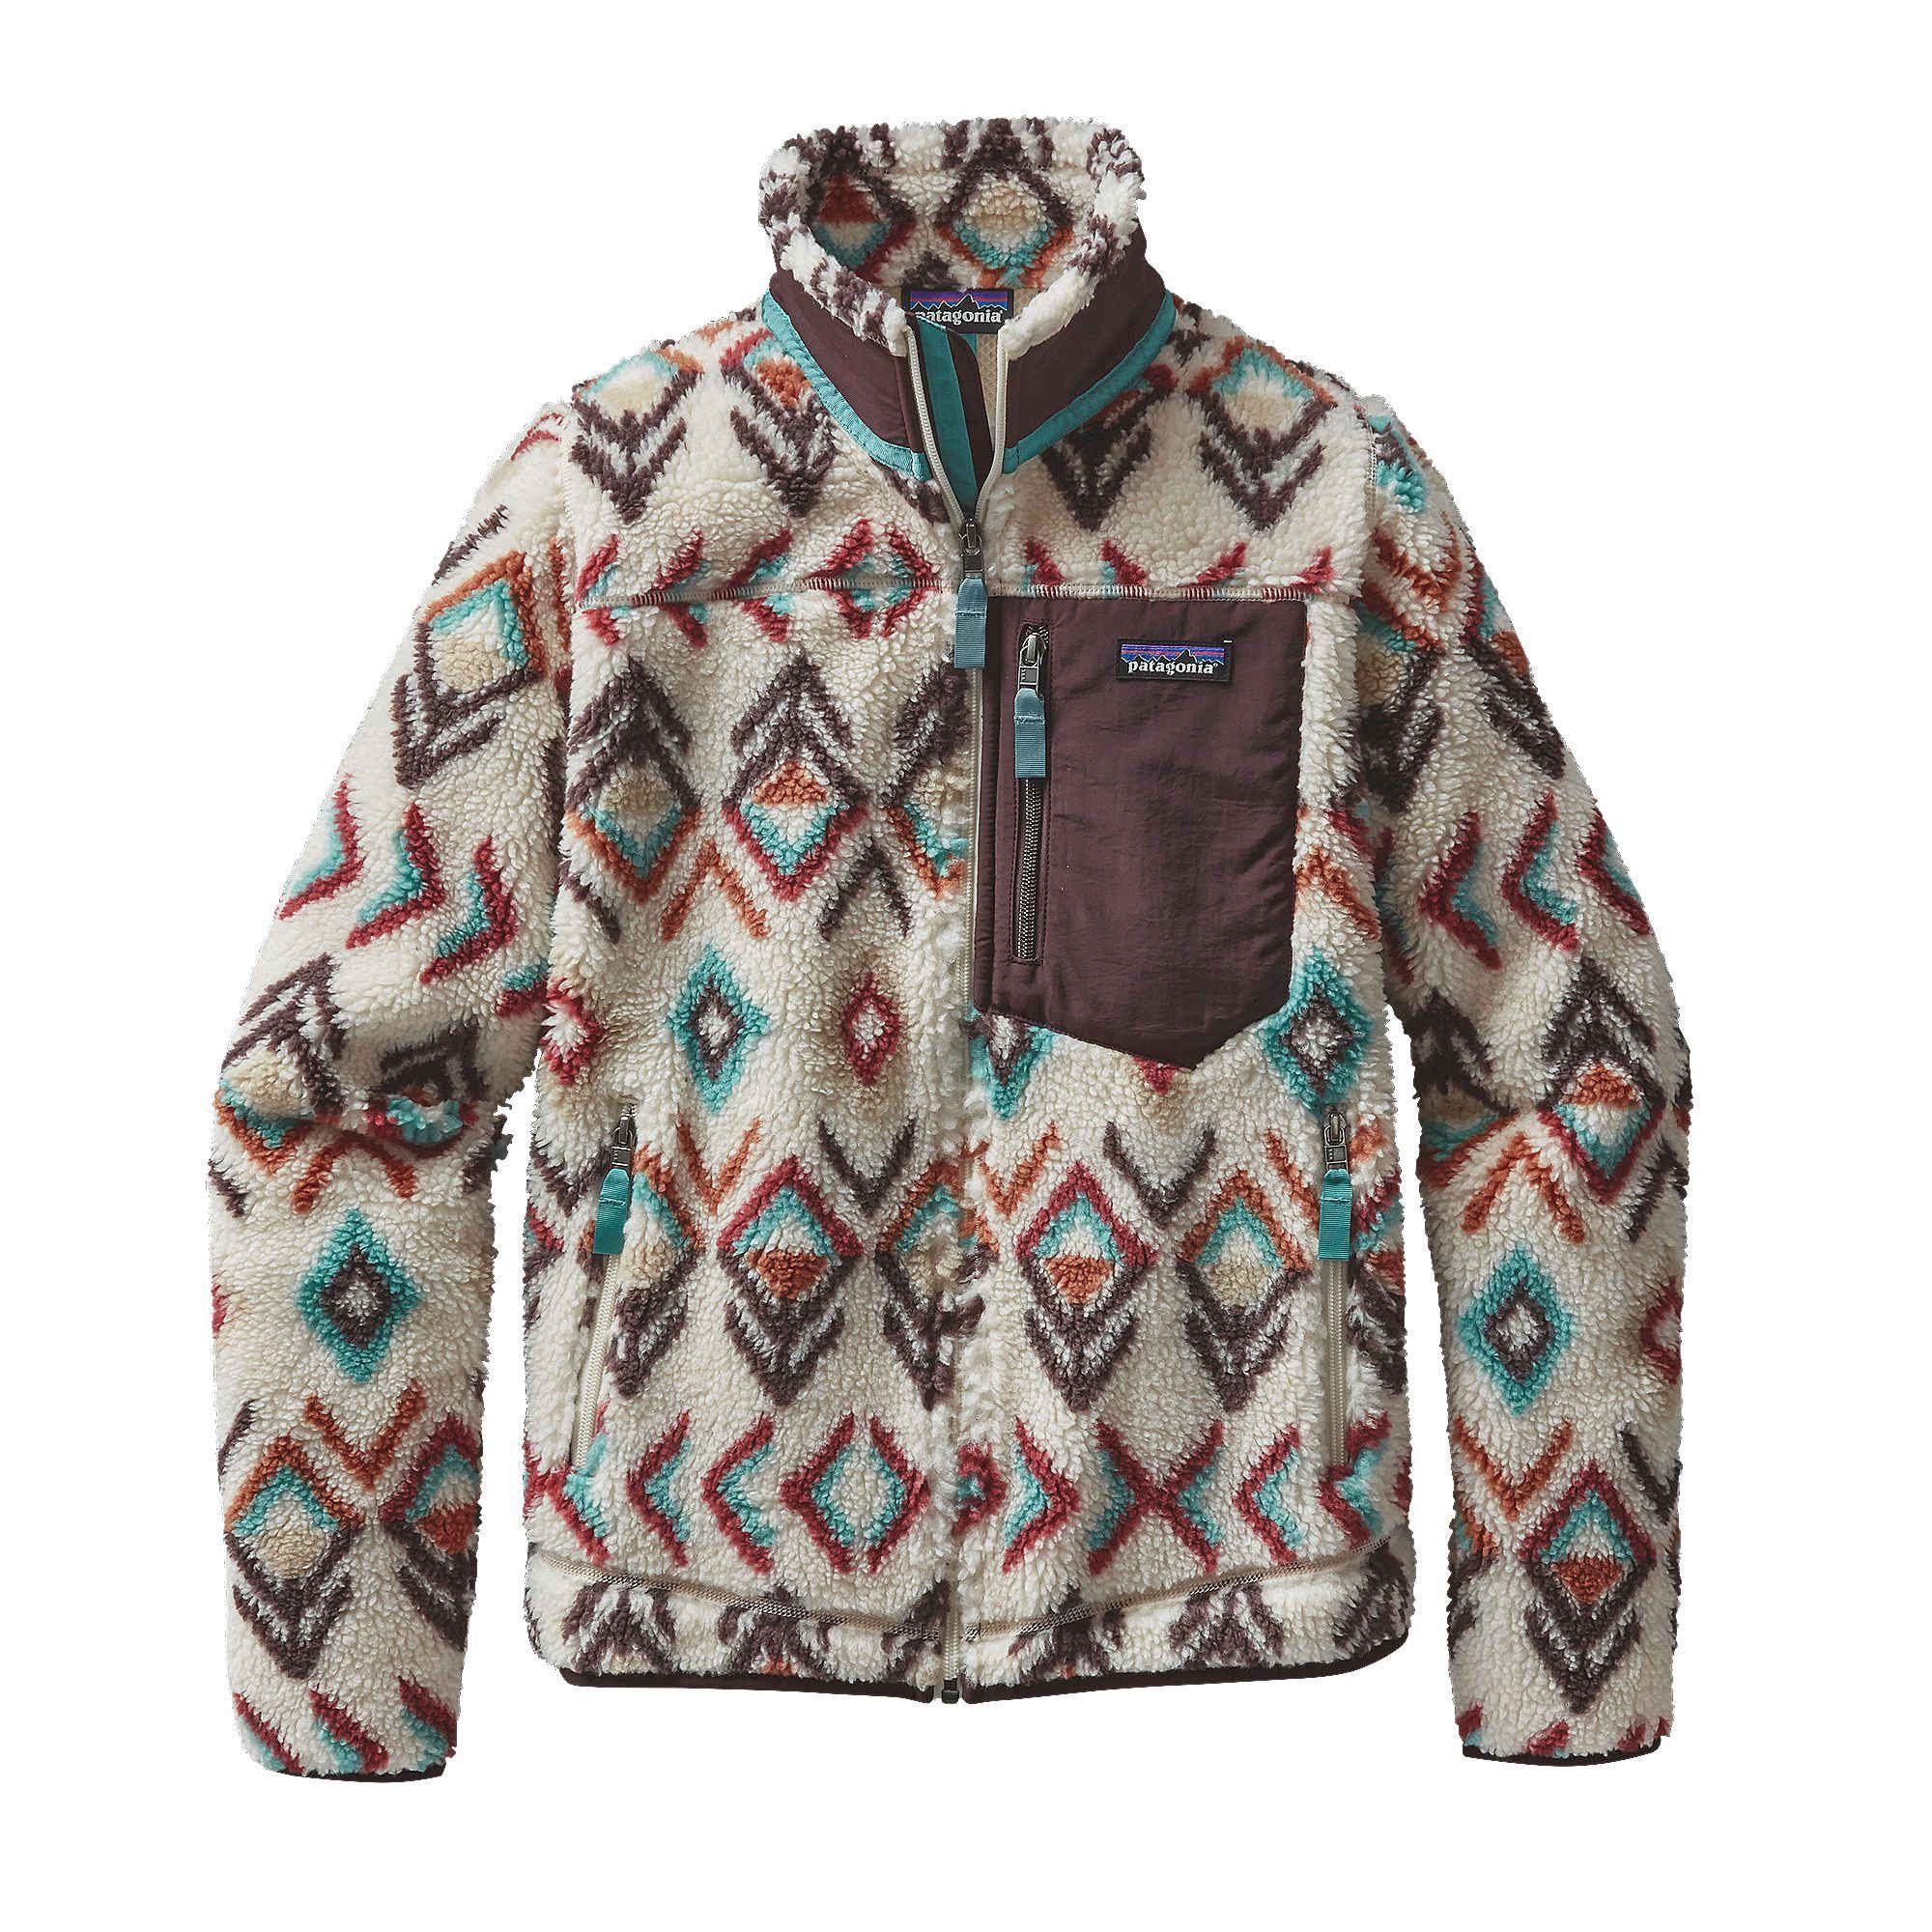 a72f14372 Patagonia Women's Classic Retro-X Jacket | My style | Clothes ...